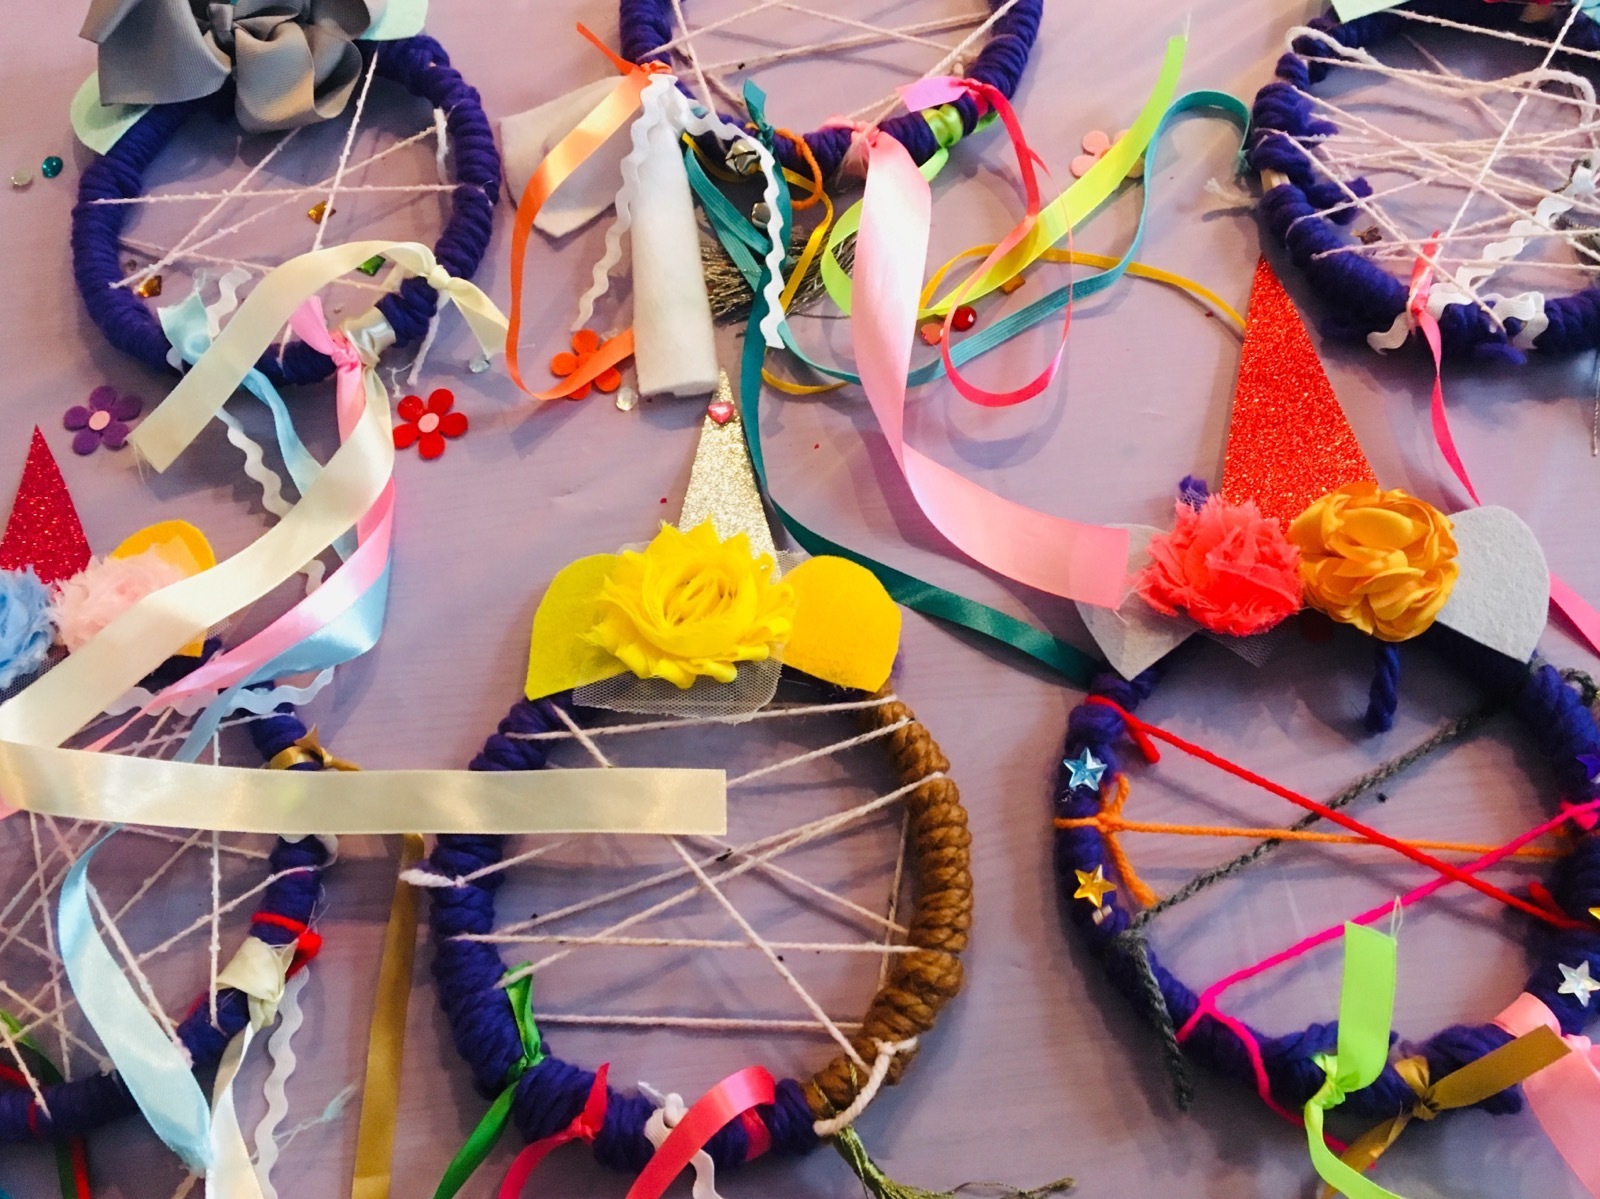 Unicorn Dreamcatcher Class at Time Out Market New York